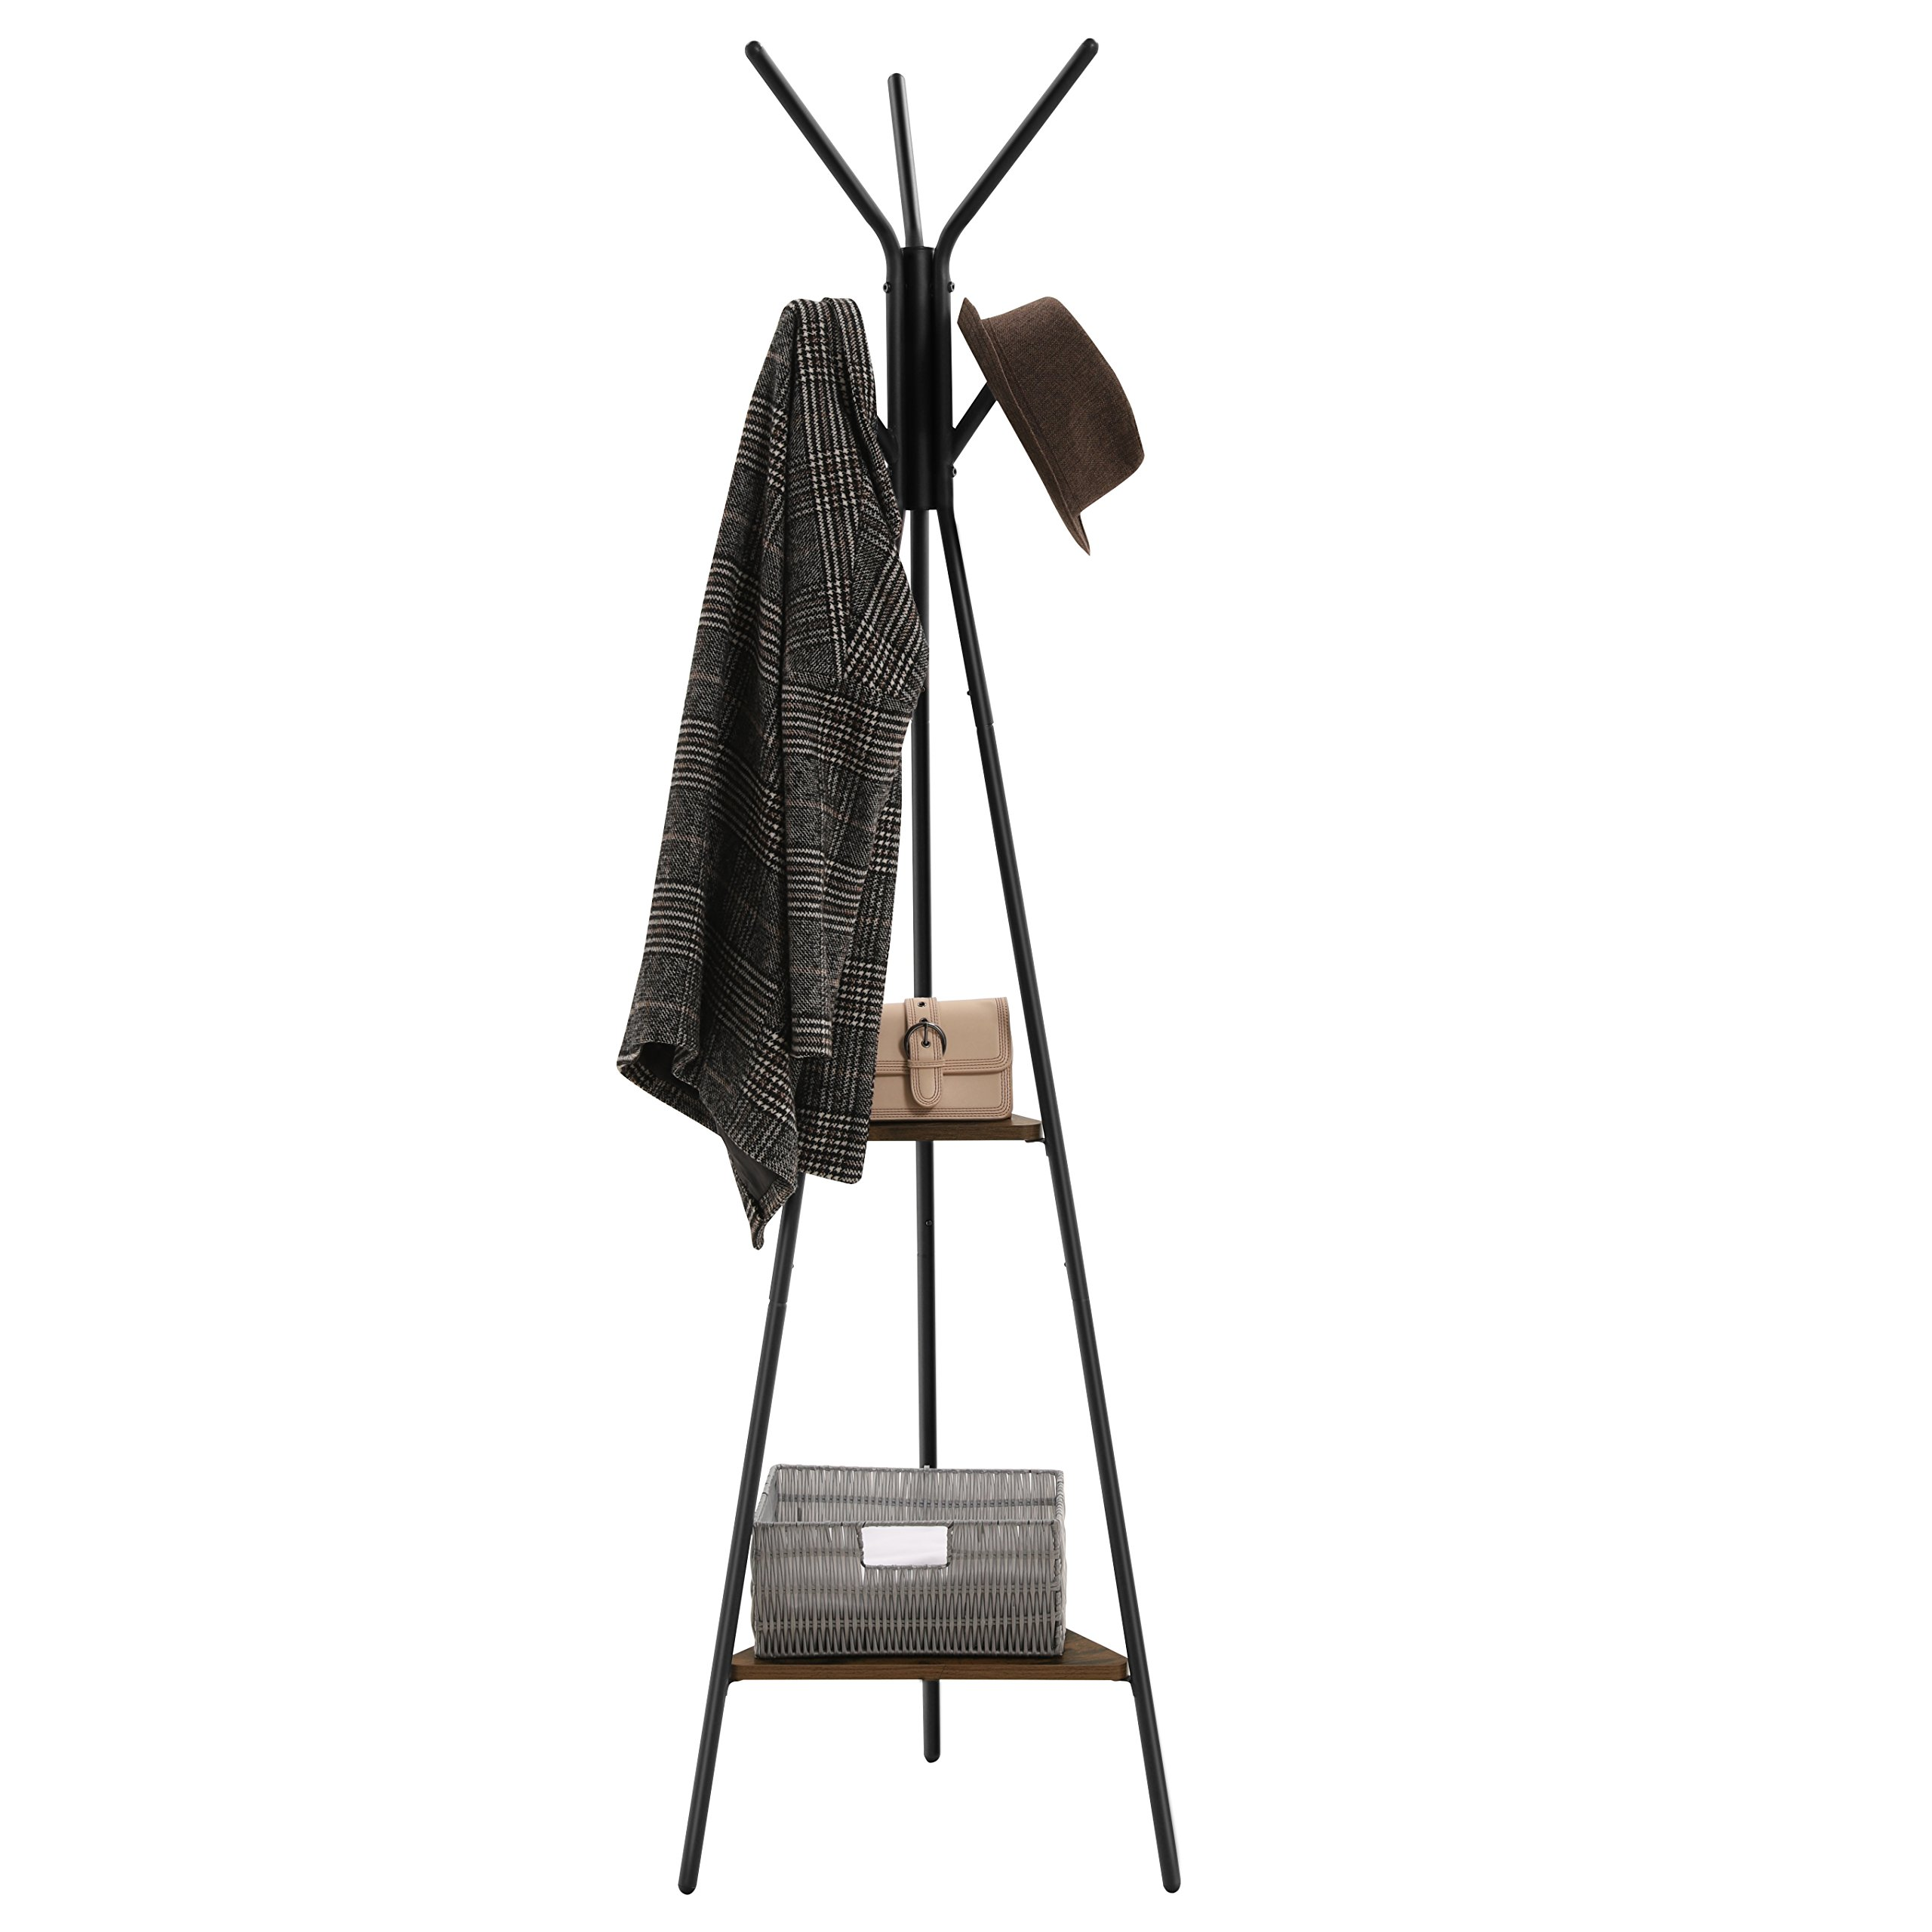 SONGMICS Coat Rack Stand, Coat Tree, Hall Tree Free Standing, Industrial Style, with 2 Shelves, for Clothes, Hat, Bag, Black, Vintage, URCR16BX by SONGMICS (Image #3)